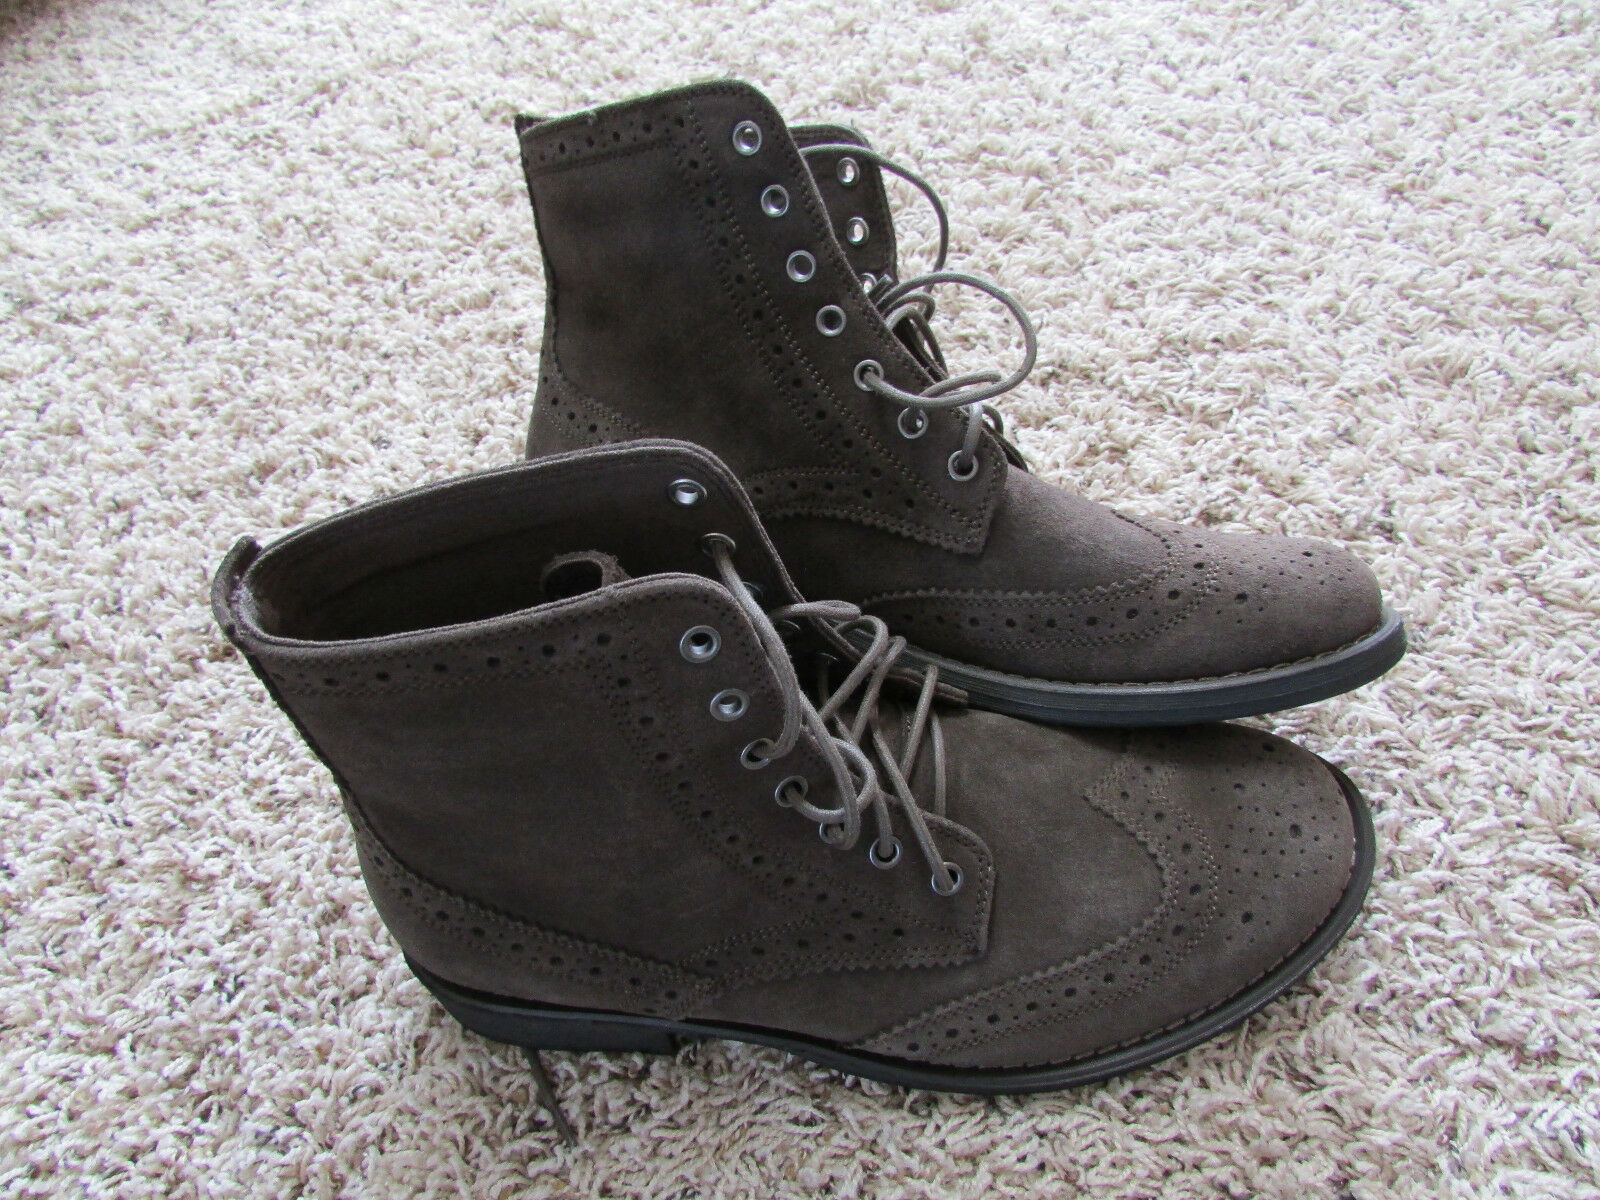 NEW AMERICAN EAGLE WINGTIP ANKLE BOOTS MENS 10 BROWN SUEDE LEATHER